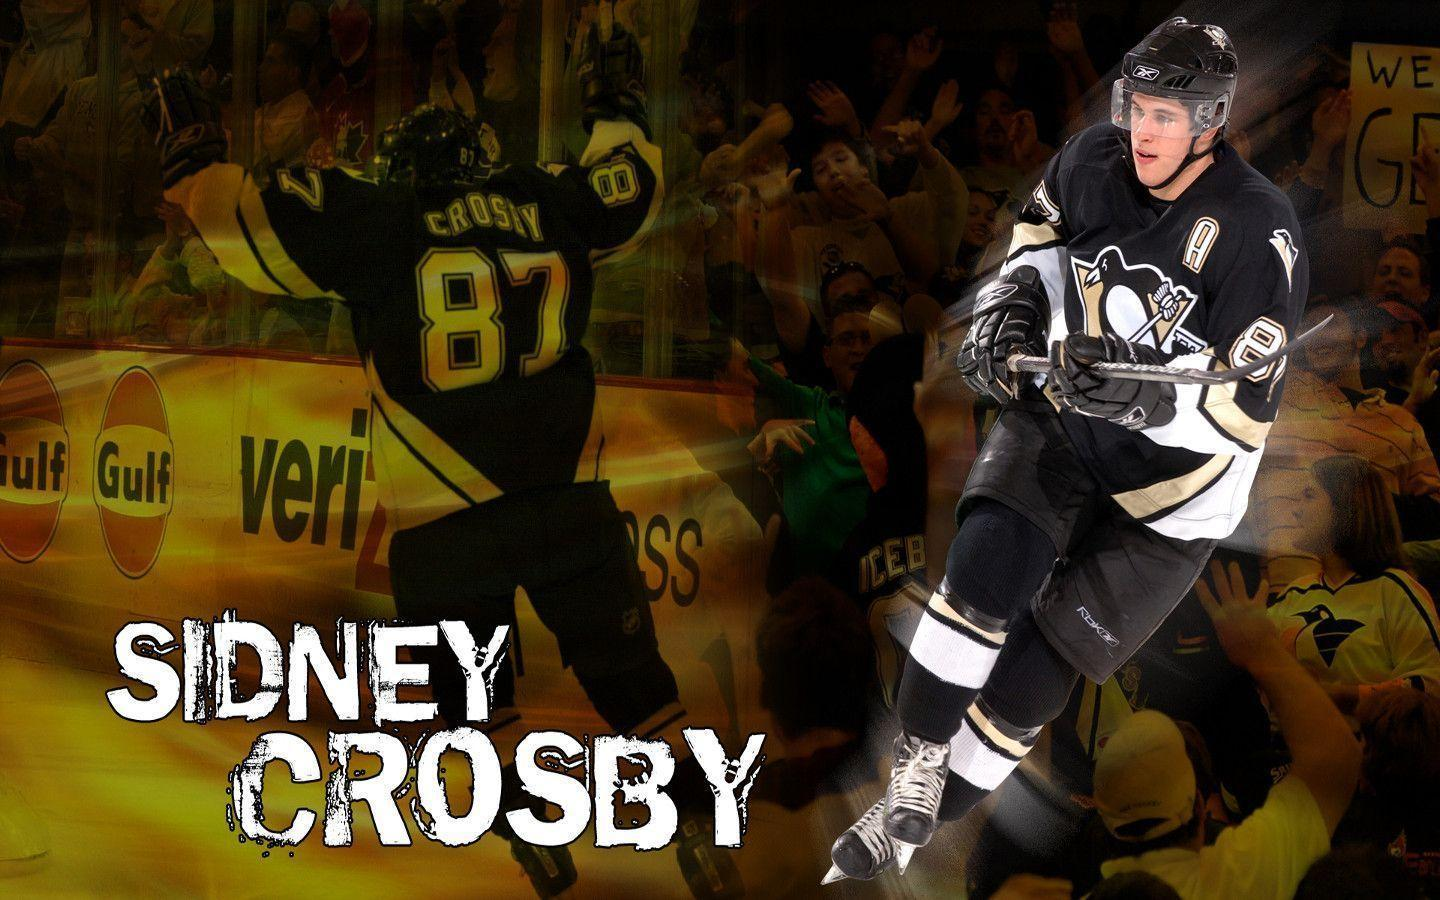 sidney crosby wallpaper nhl - photo #29